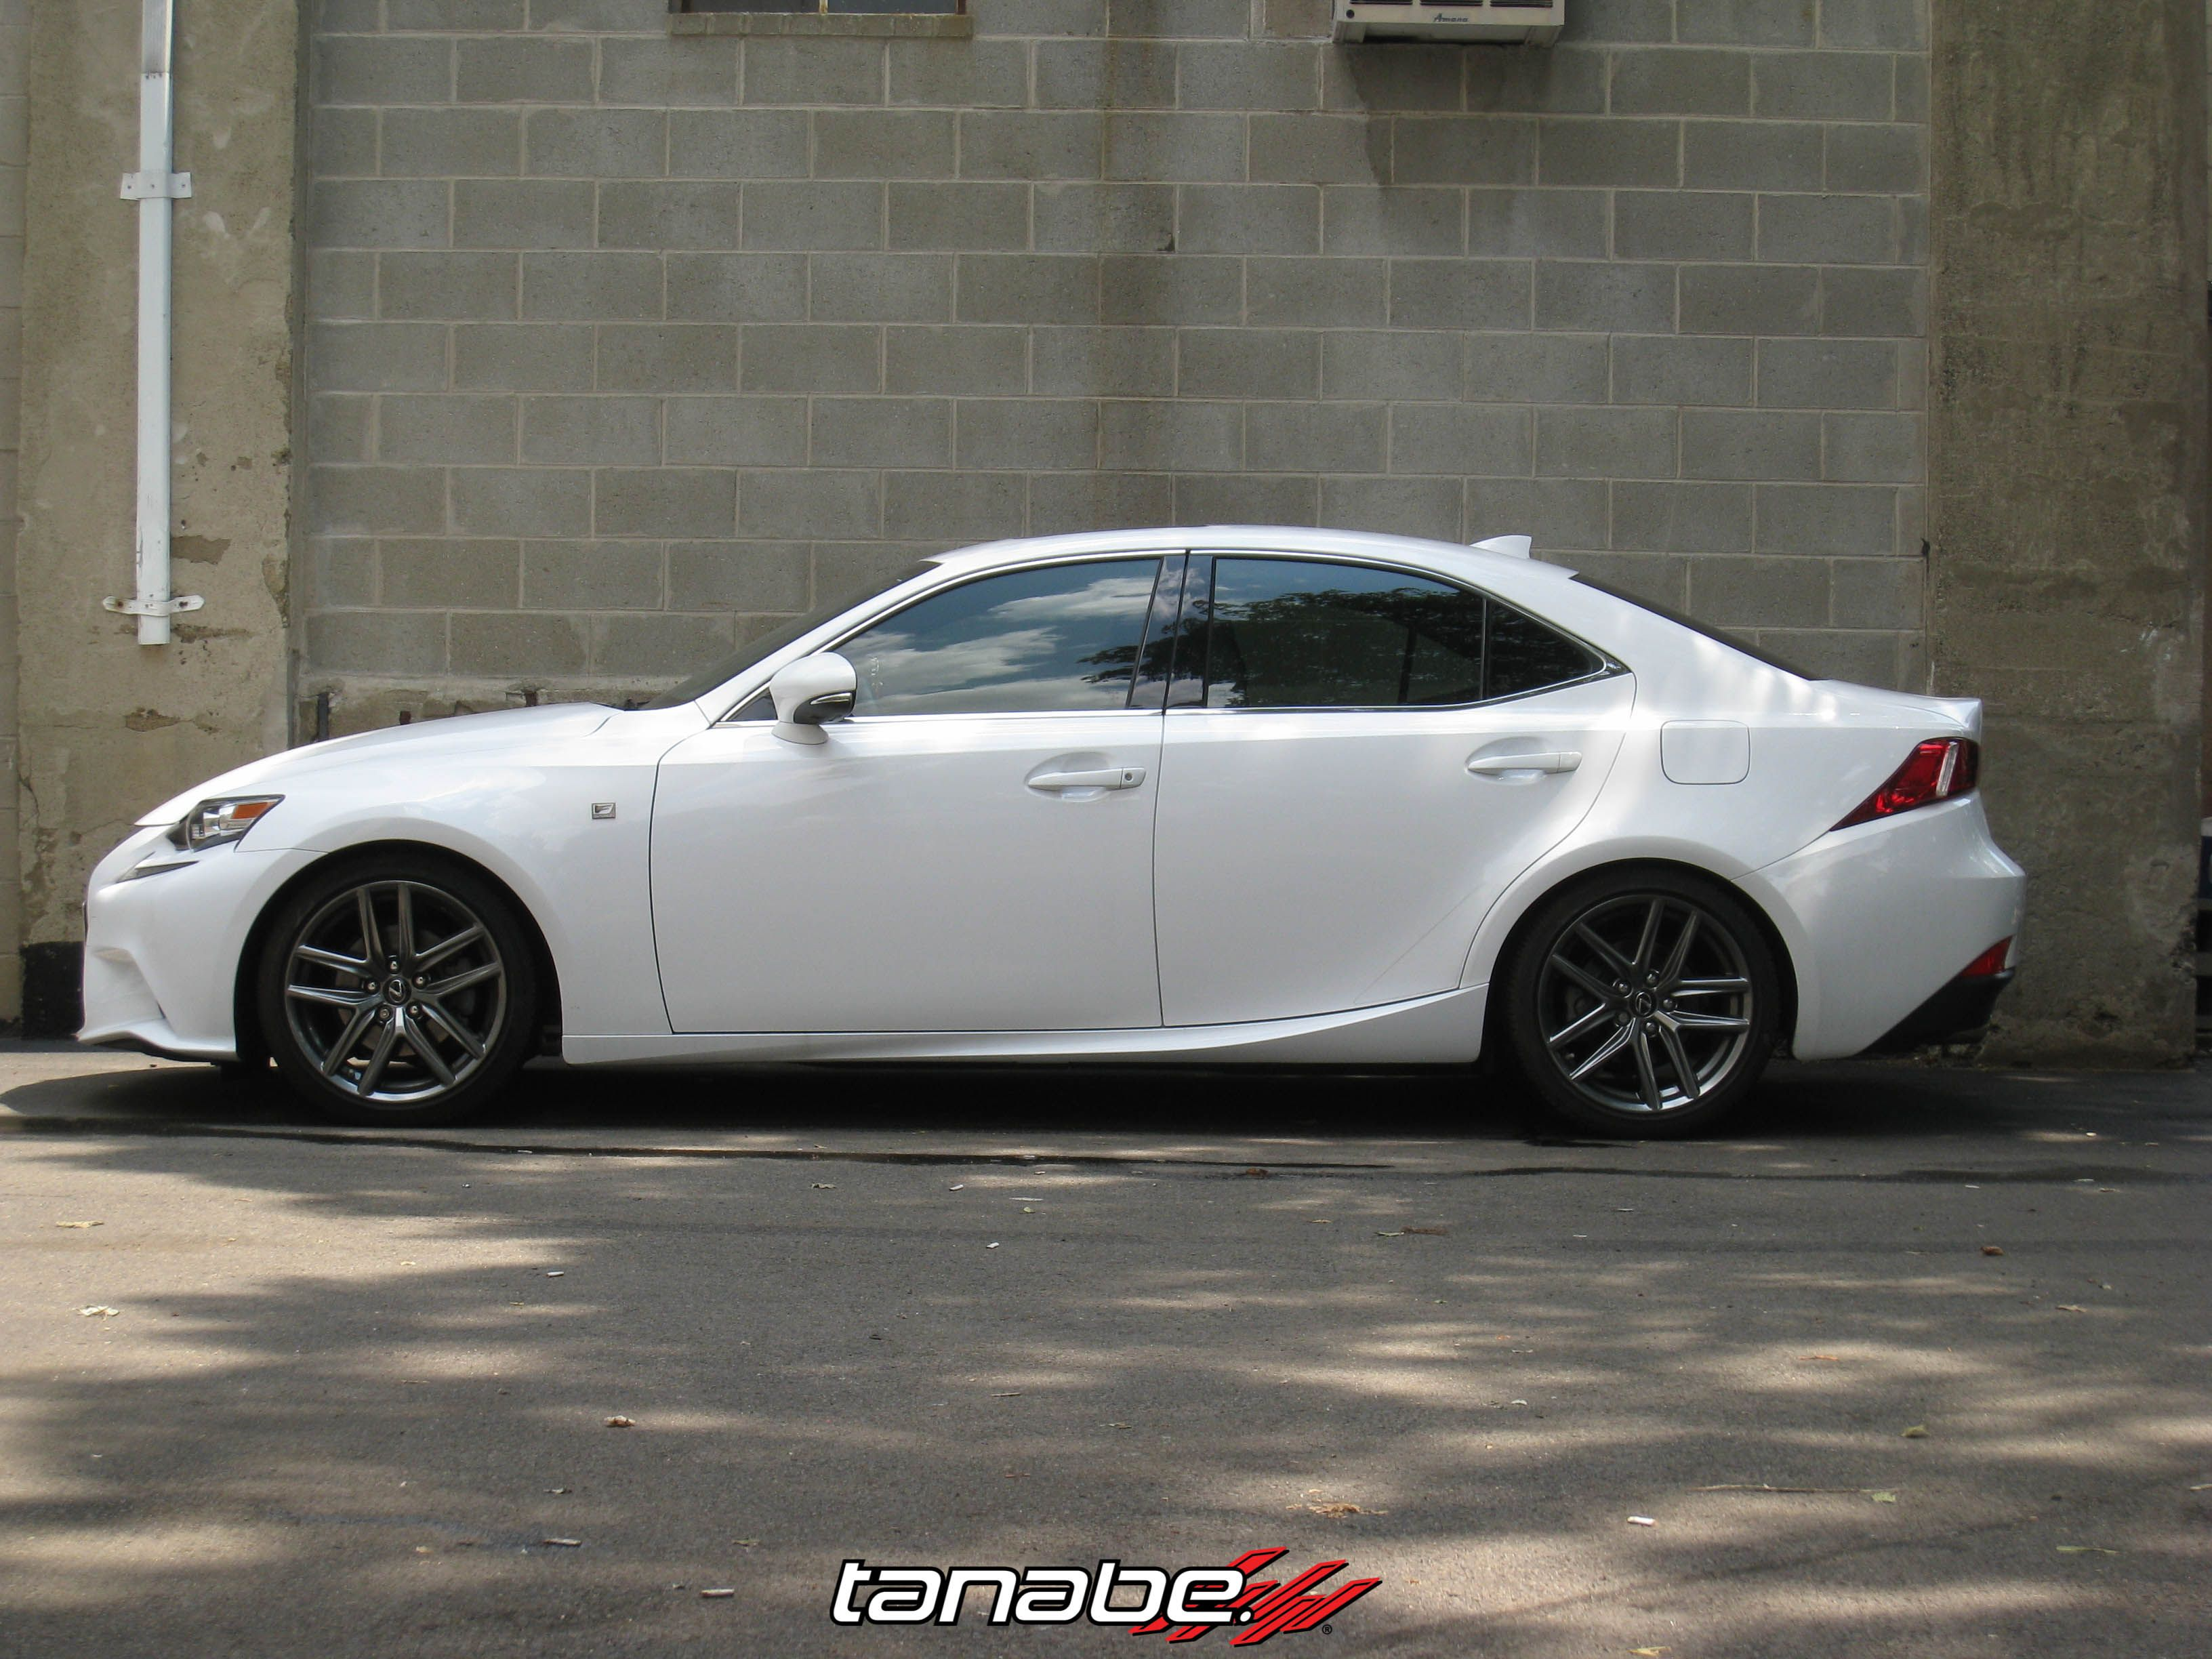 Pictured 2014 Lexus IS250 F Sport AWD on NF210 Springs PART